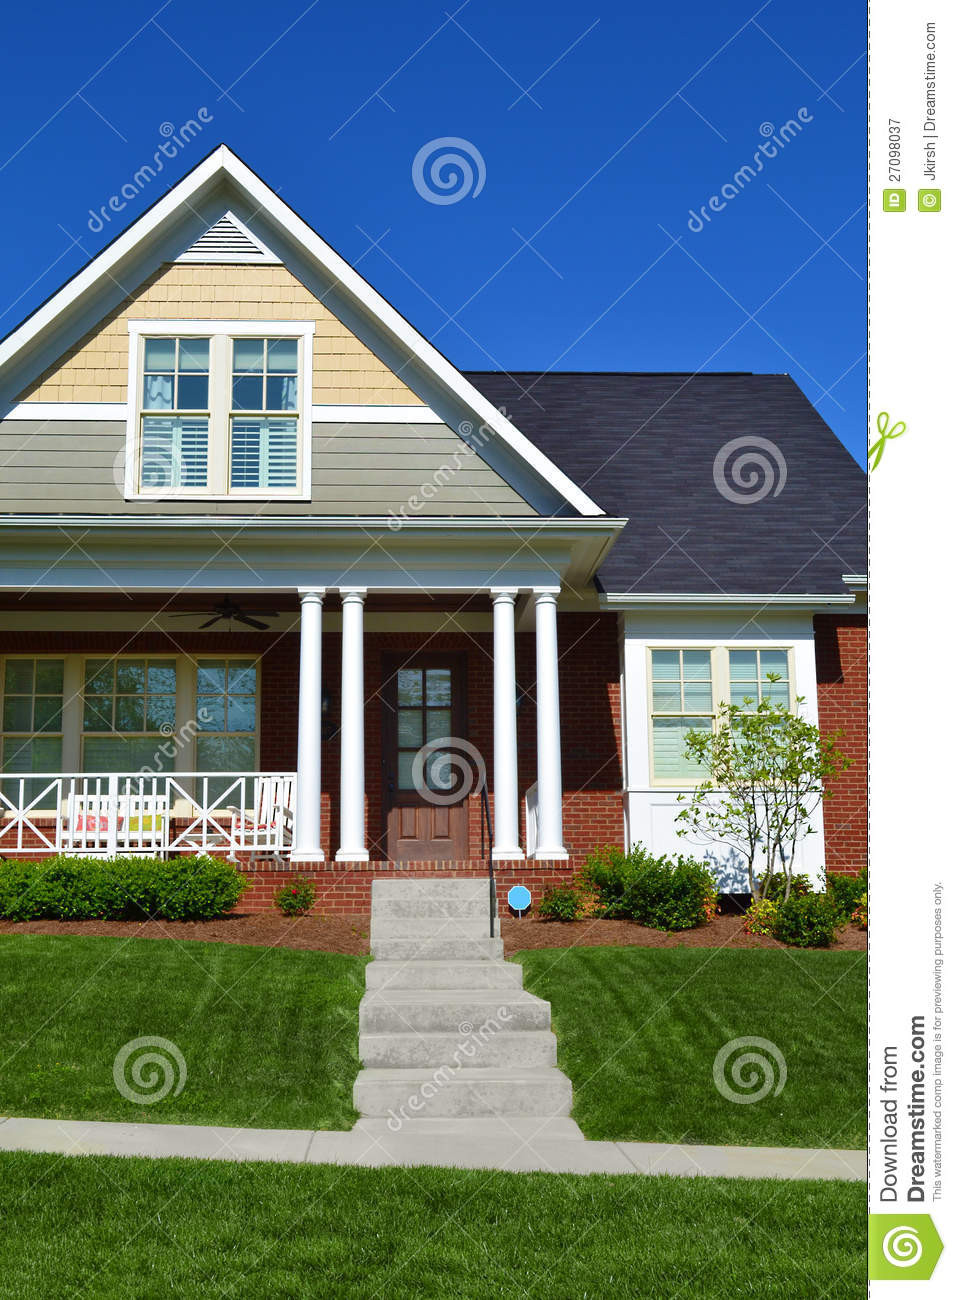 Brick cape cod house stock image image of friendly for Cod home